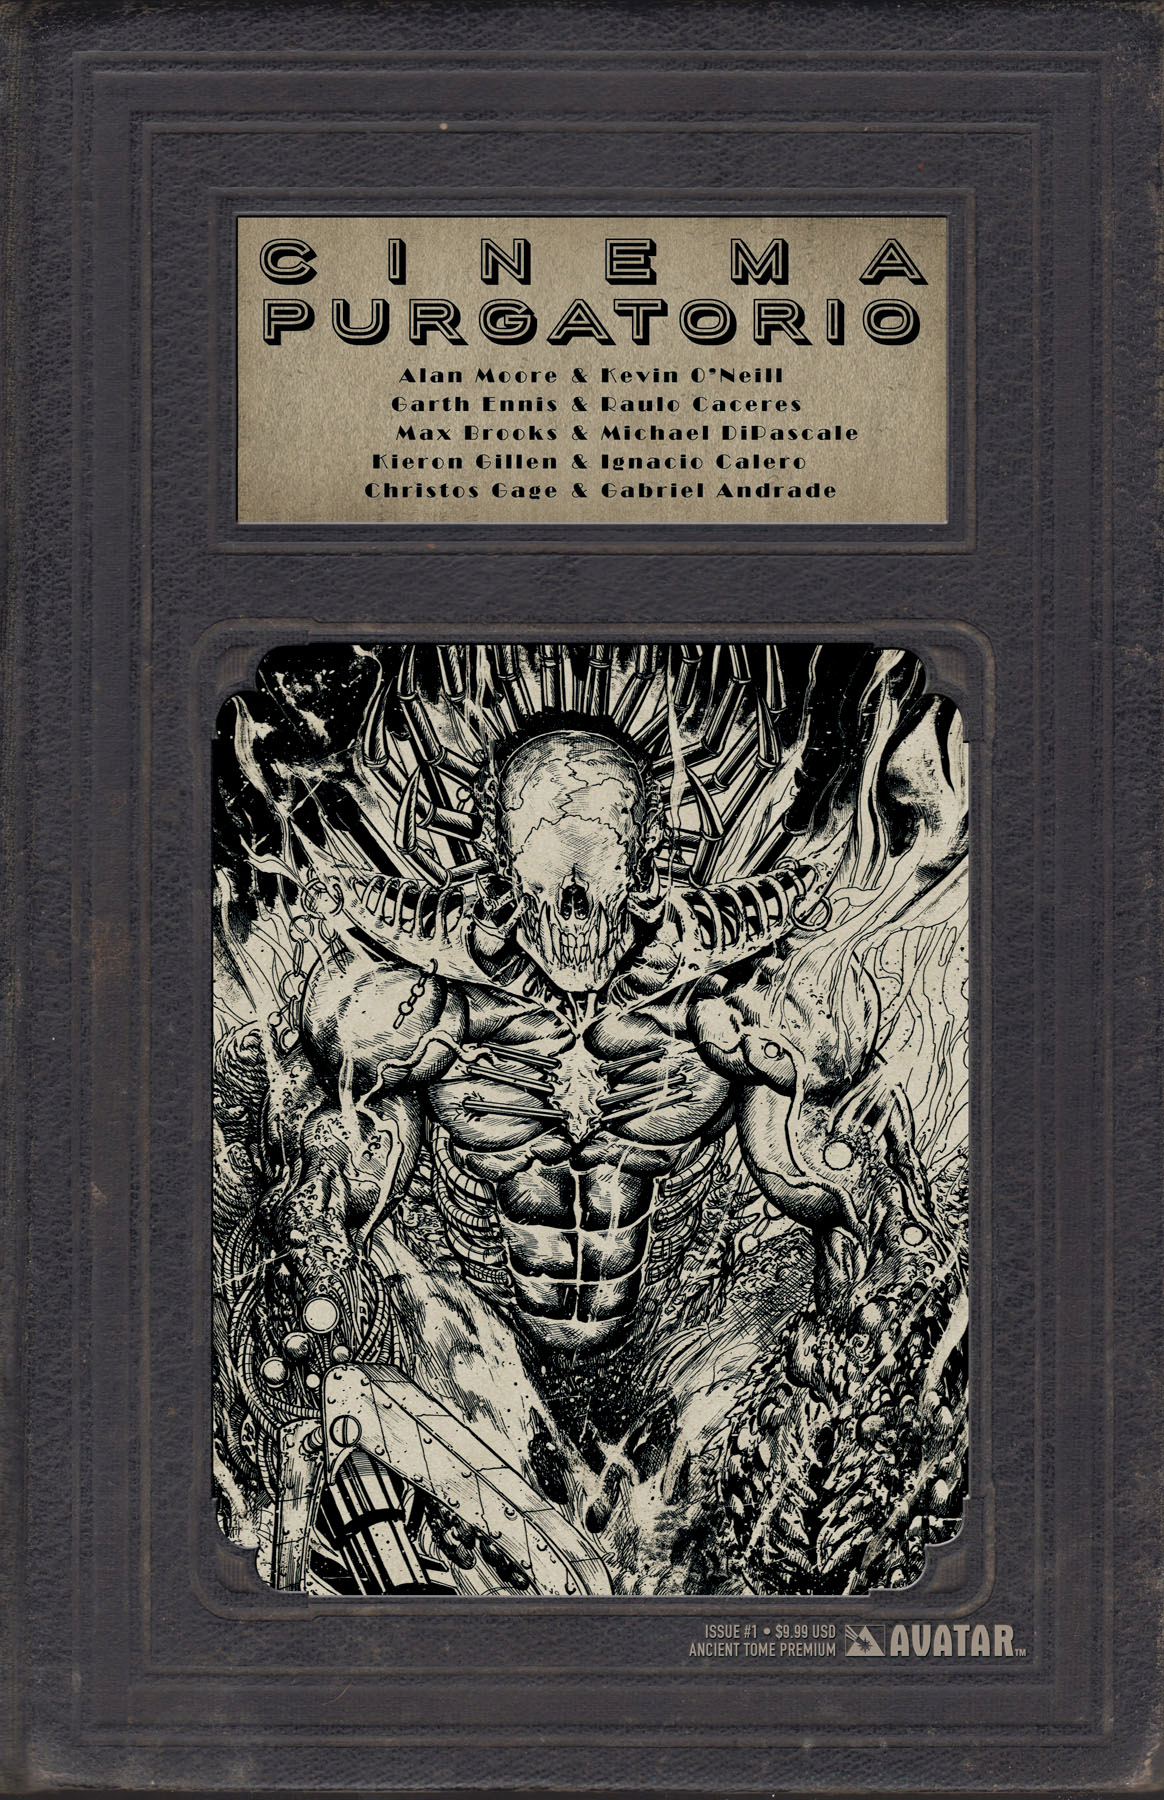 CINEMA PURGATORIO #1 ANCIENT TOME PREMIUM CVR (MR)